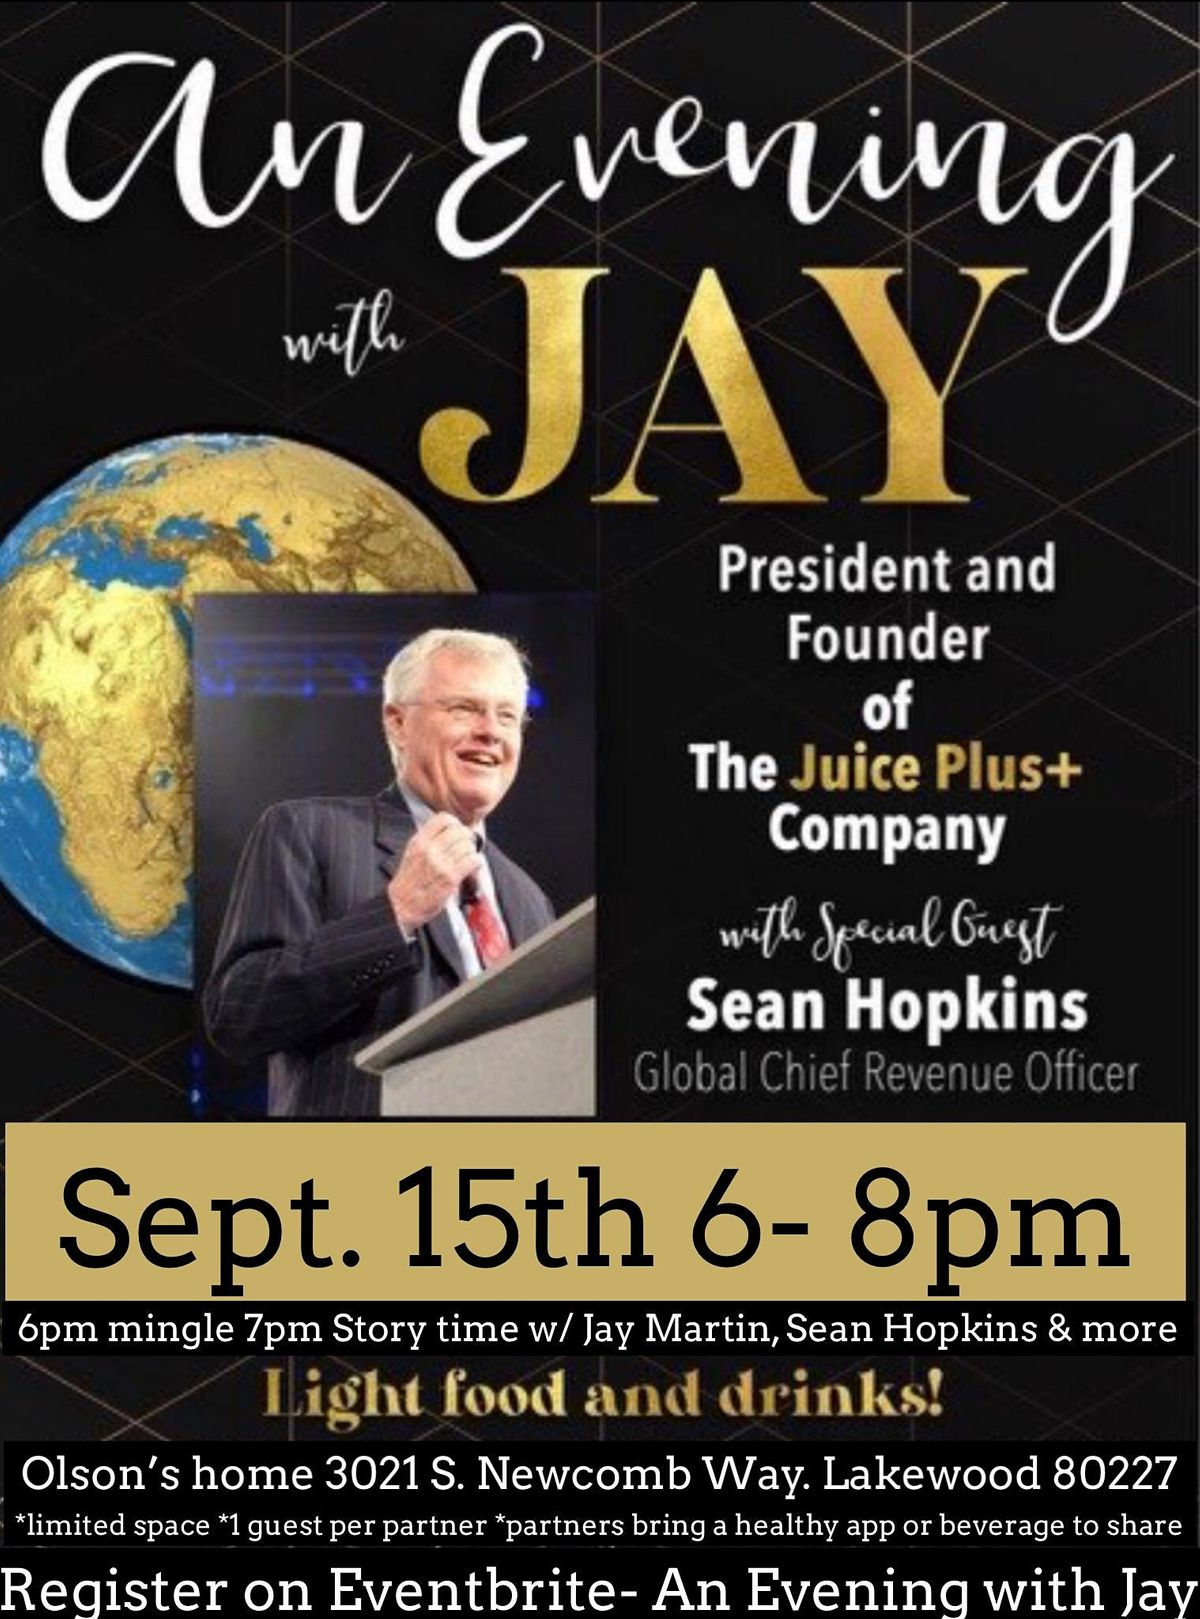 An Evening with Jay